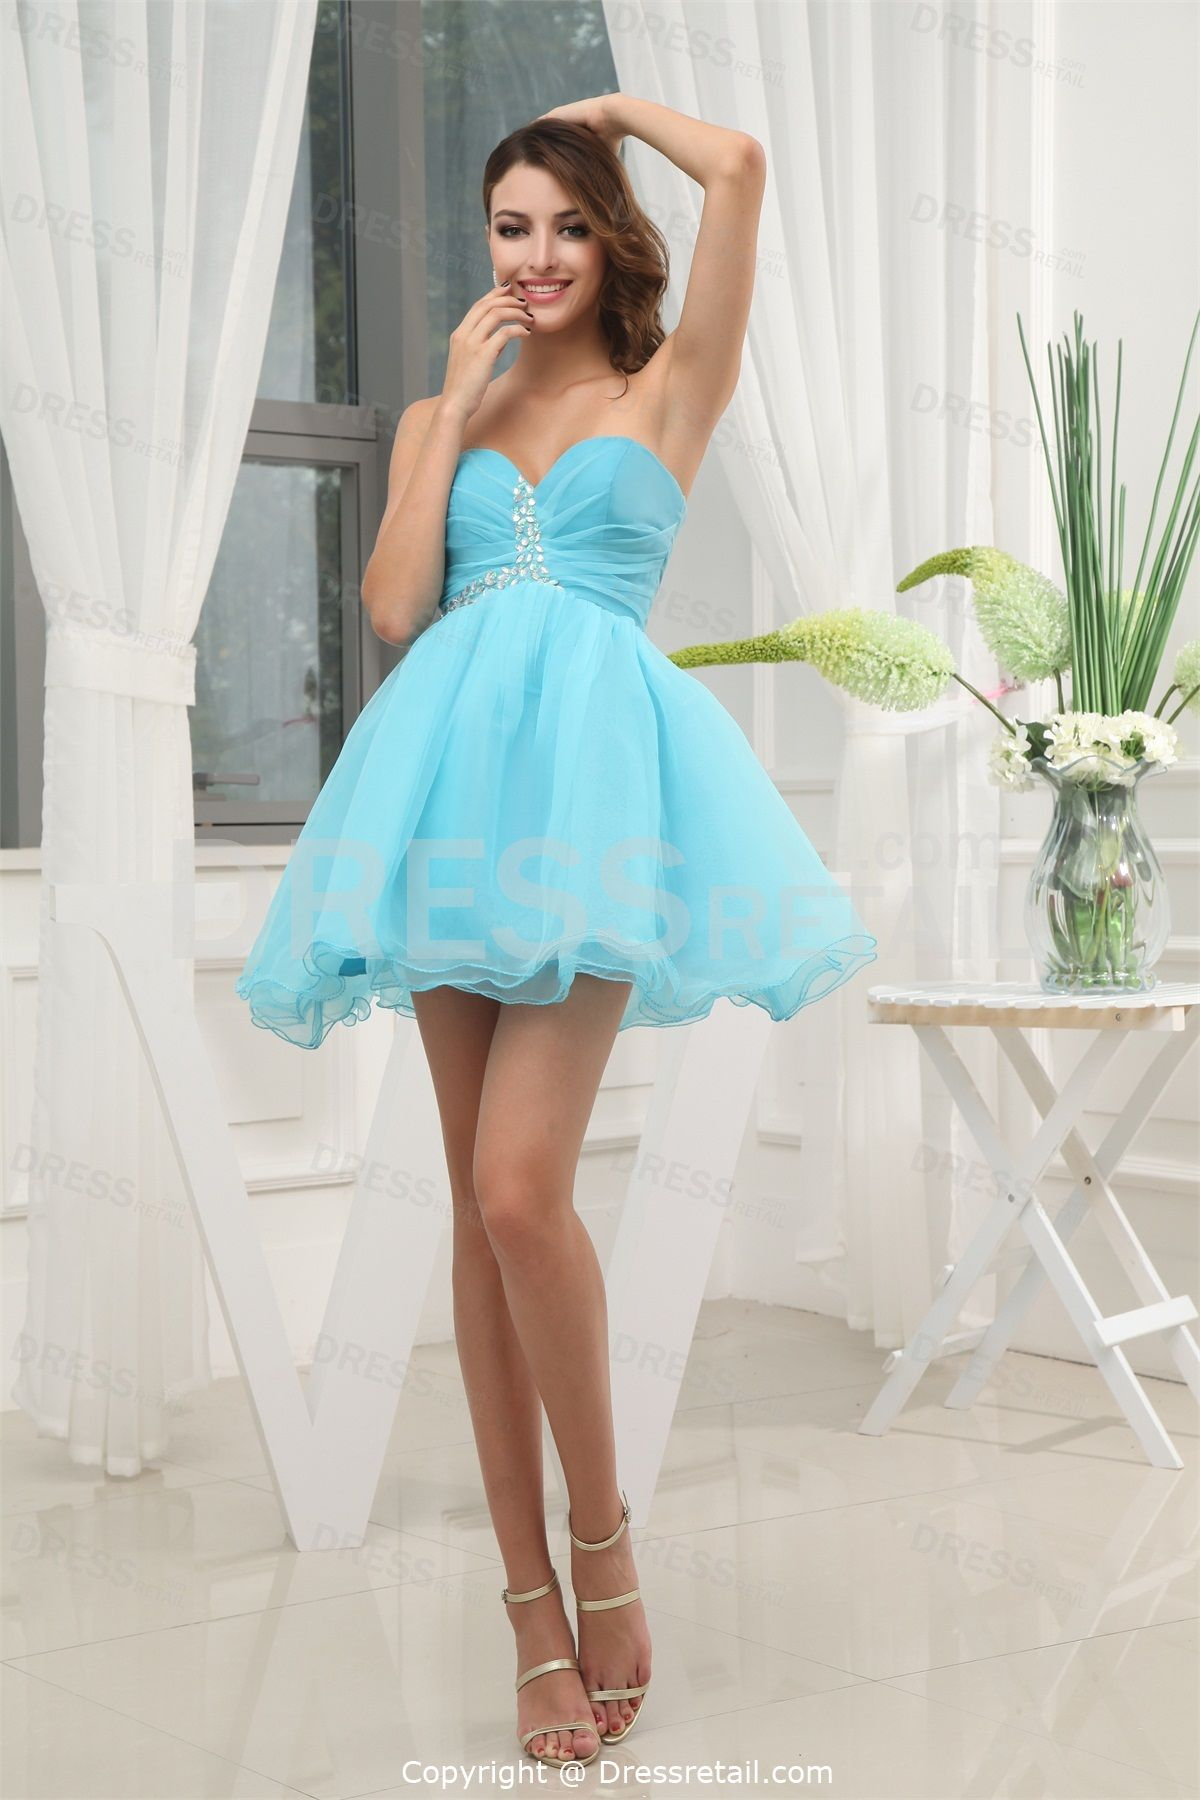 Sweet dresses dresses uebeading sweet mini blue taffeta